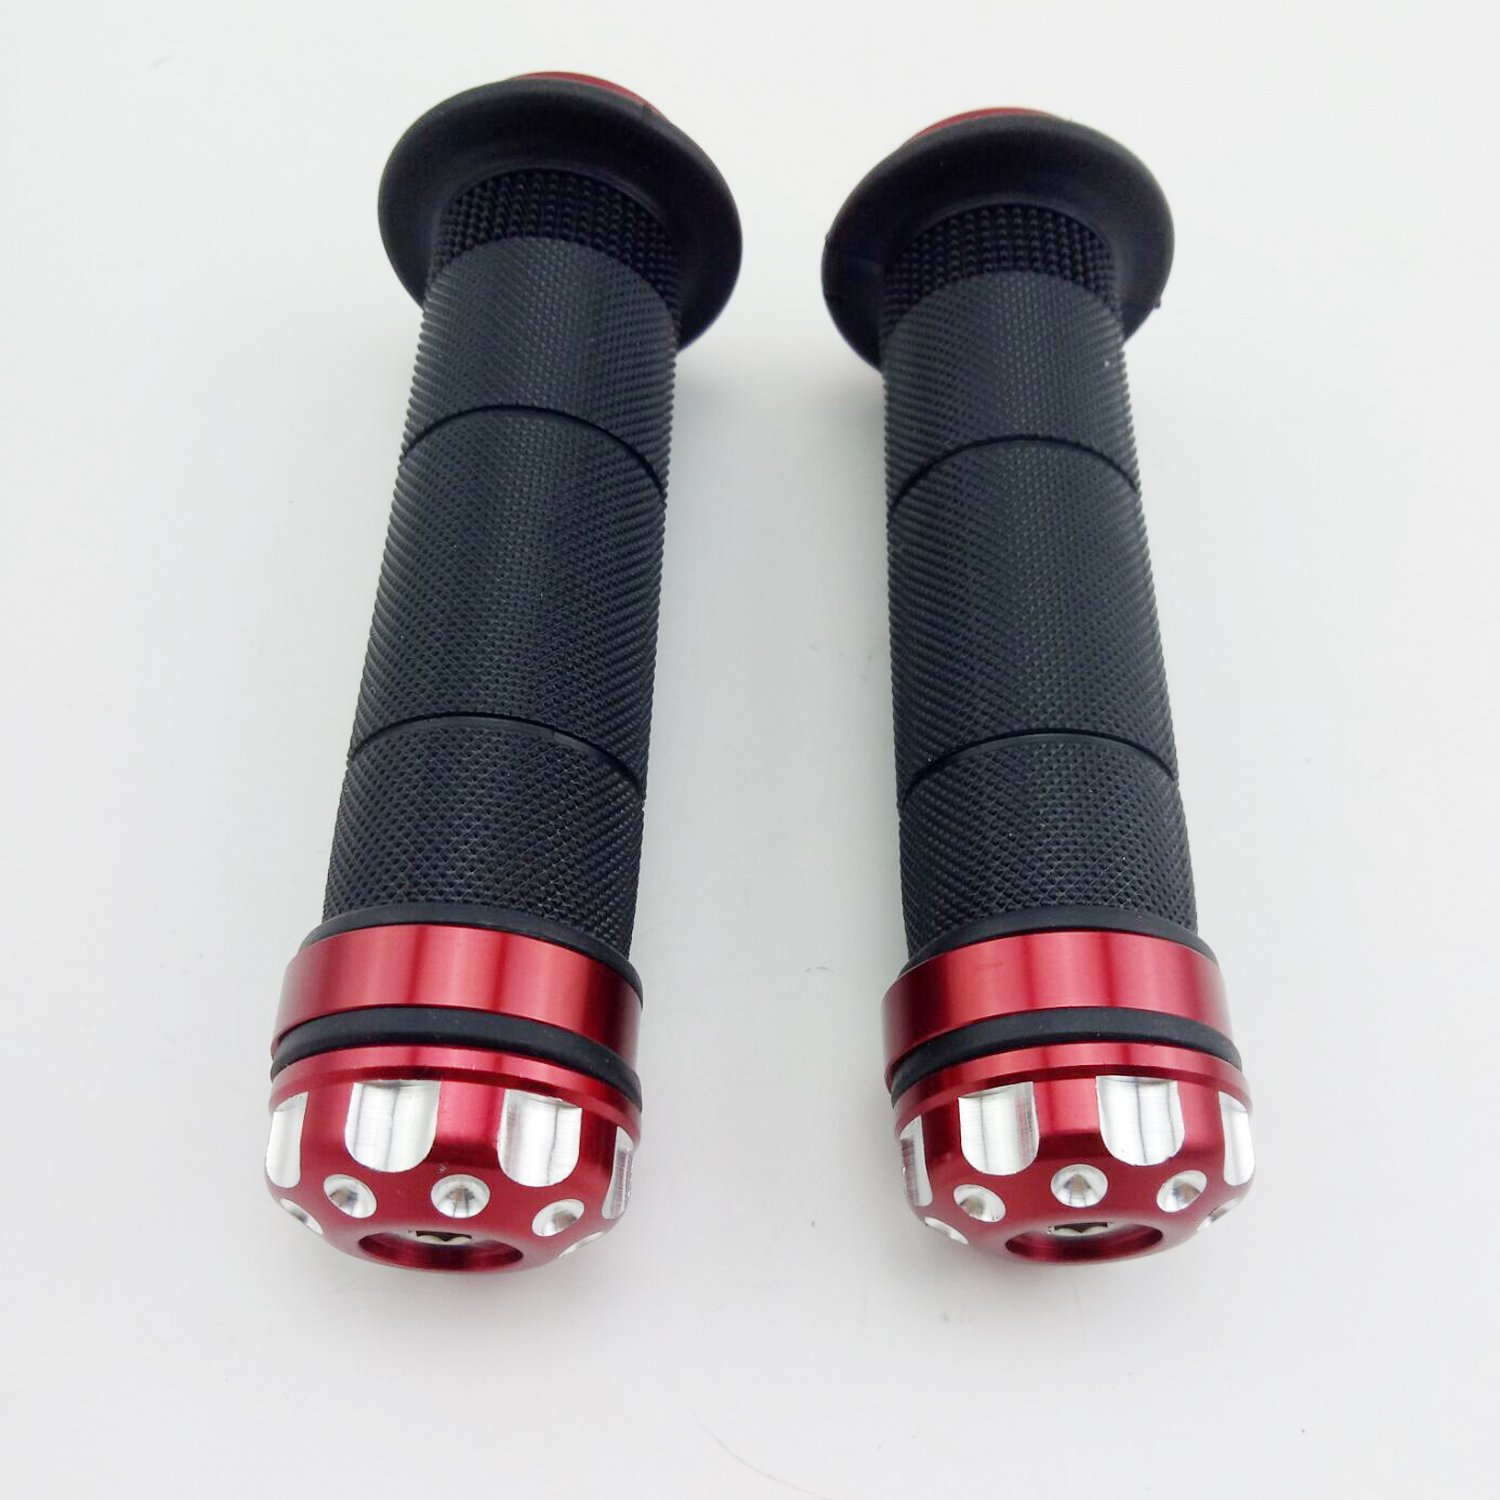 Black OKSTNO Universal Aluminum CNC Motorcycle 7//8 22mm Handlebar Grips Rubber Gel Hand Grips with Bar End